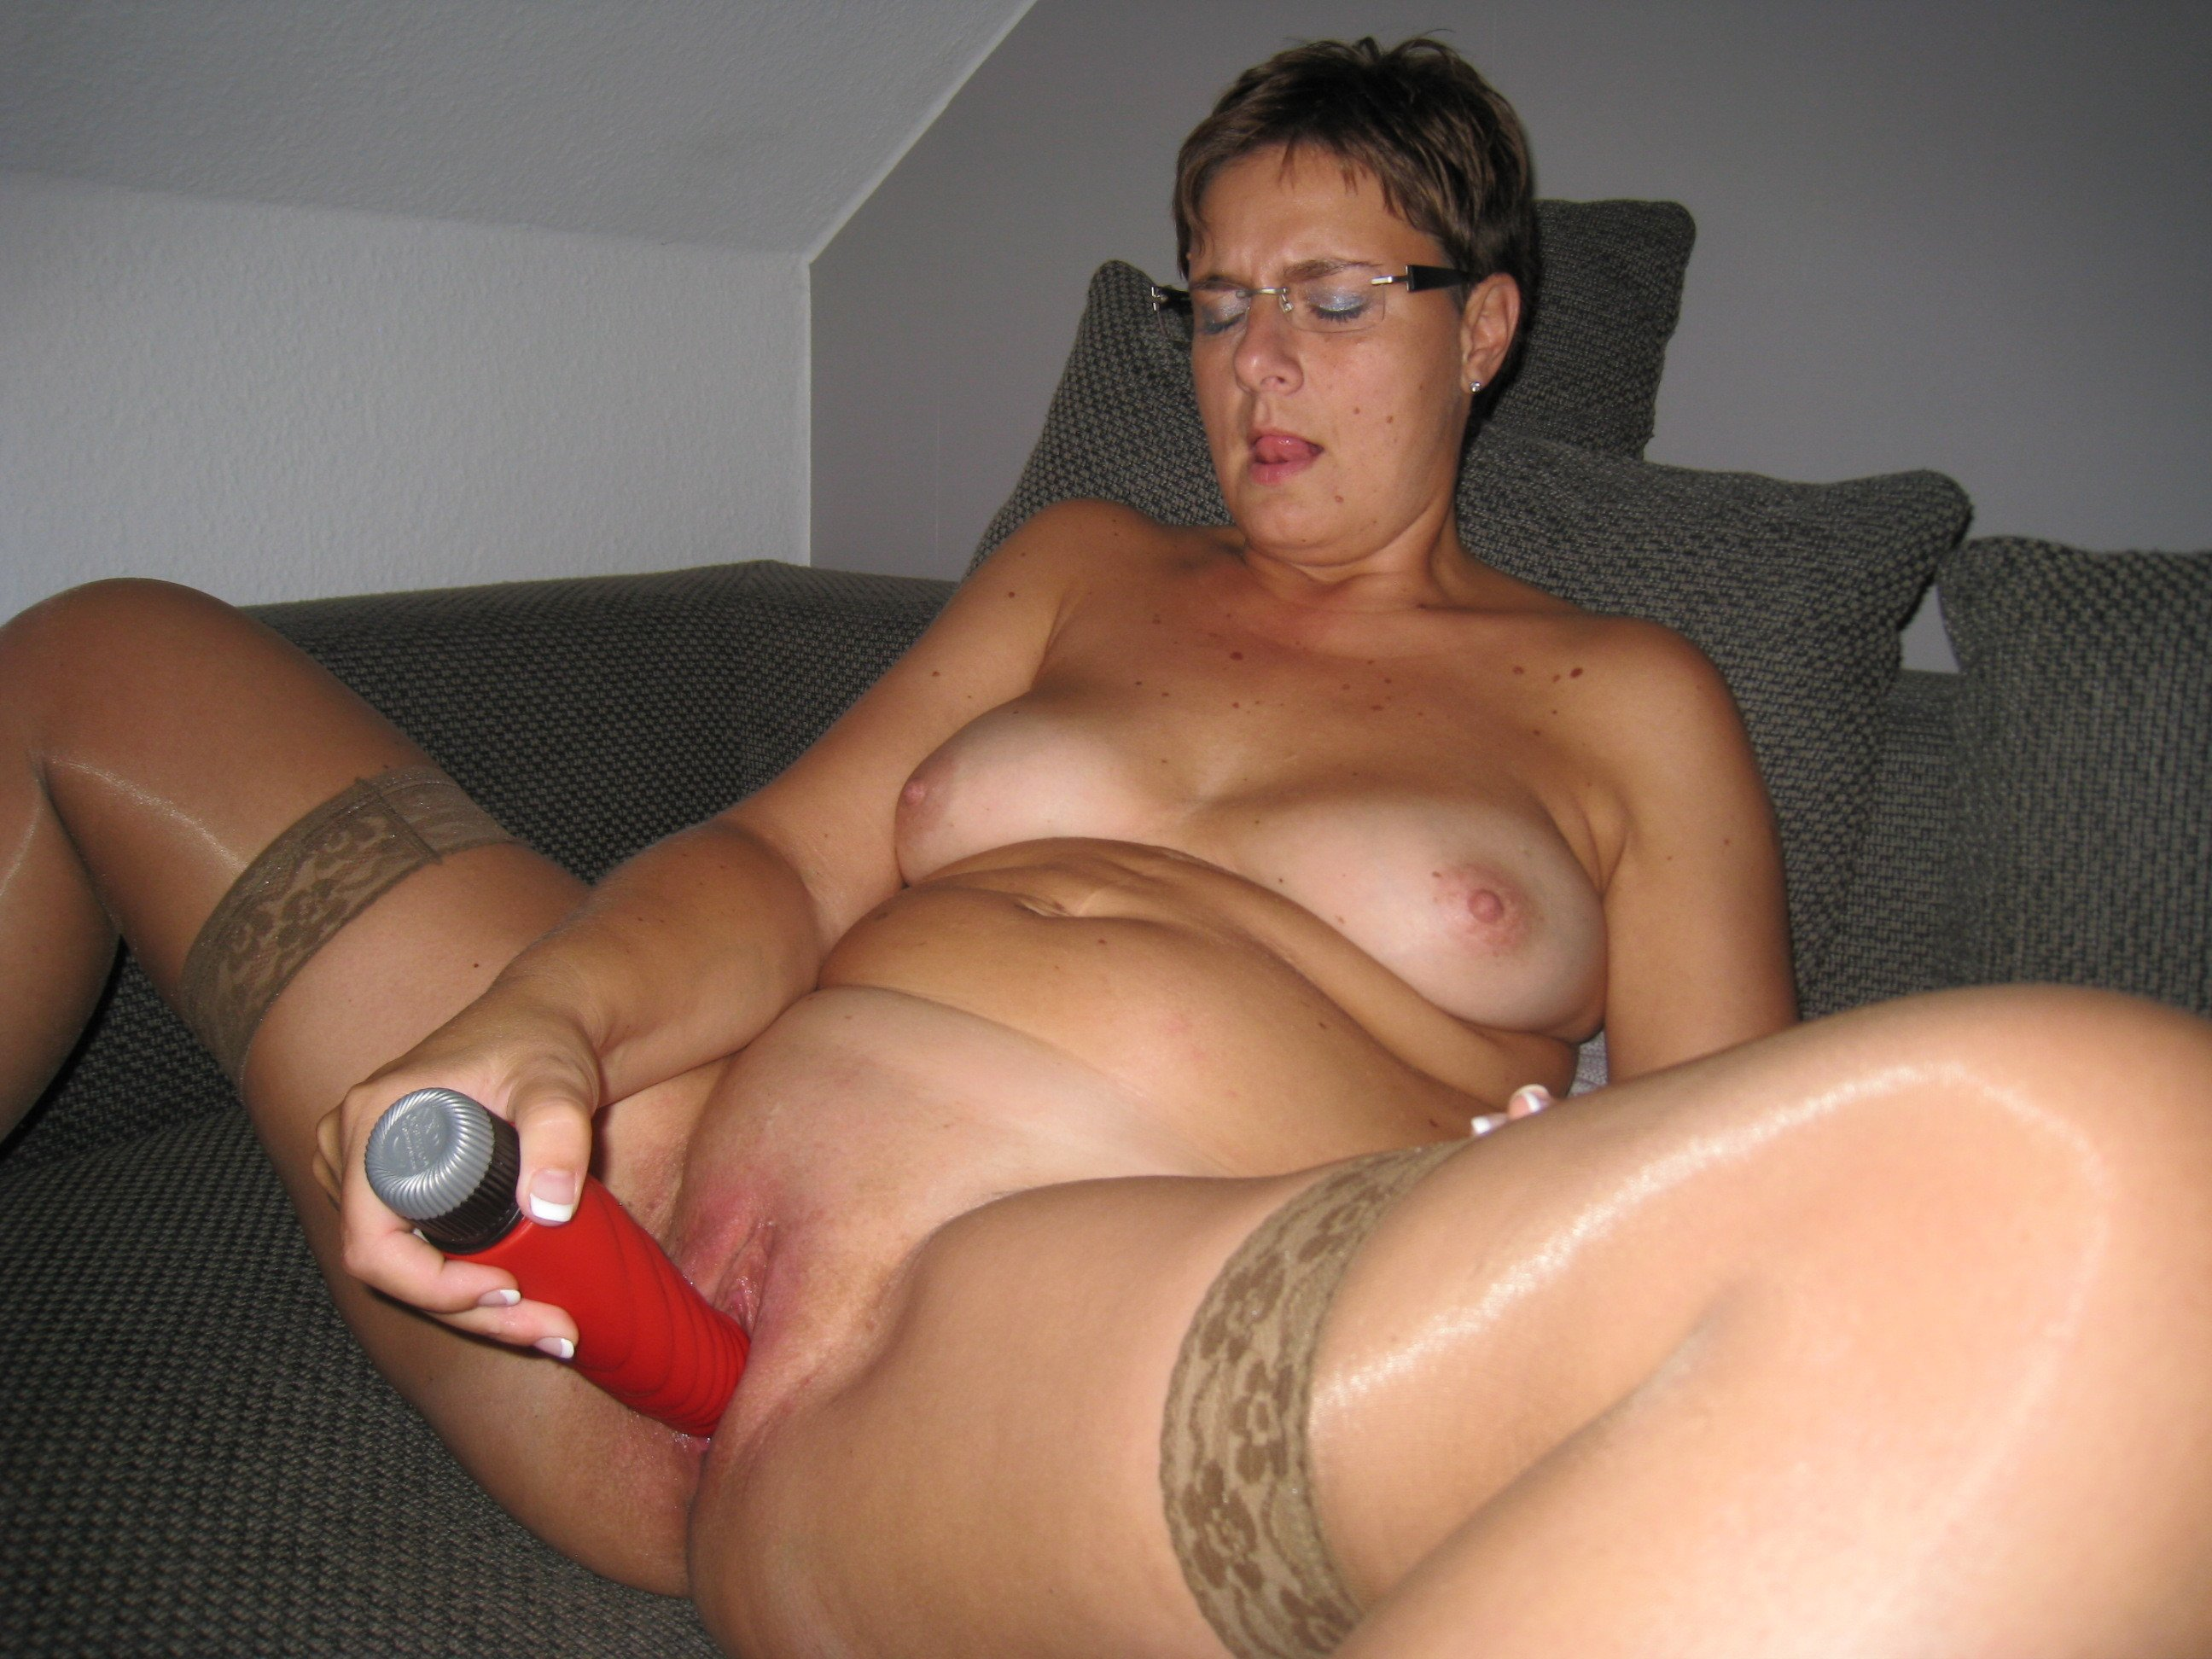 Dirty Housewife Needs Her Pussy Worked